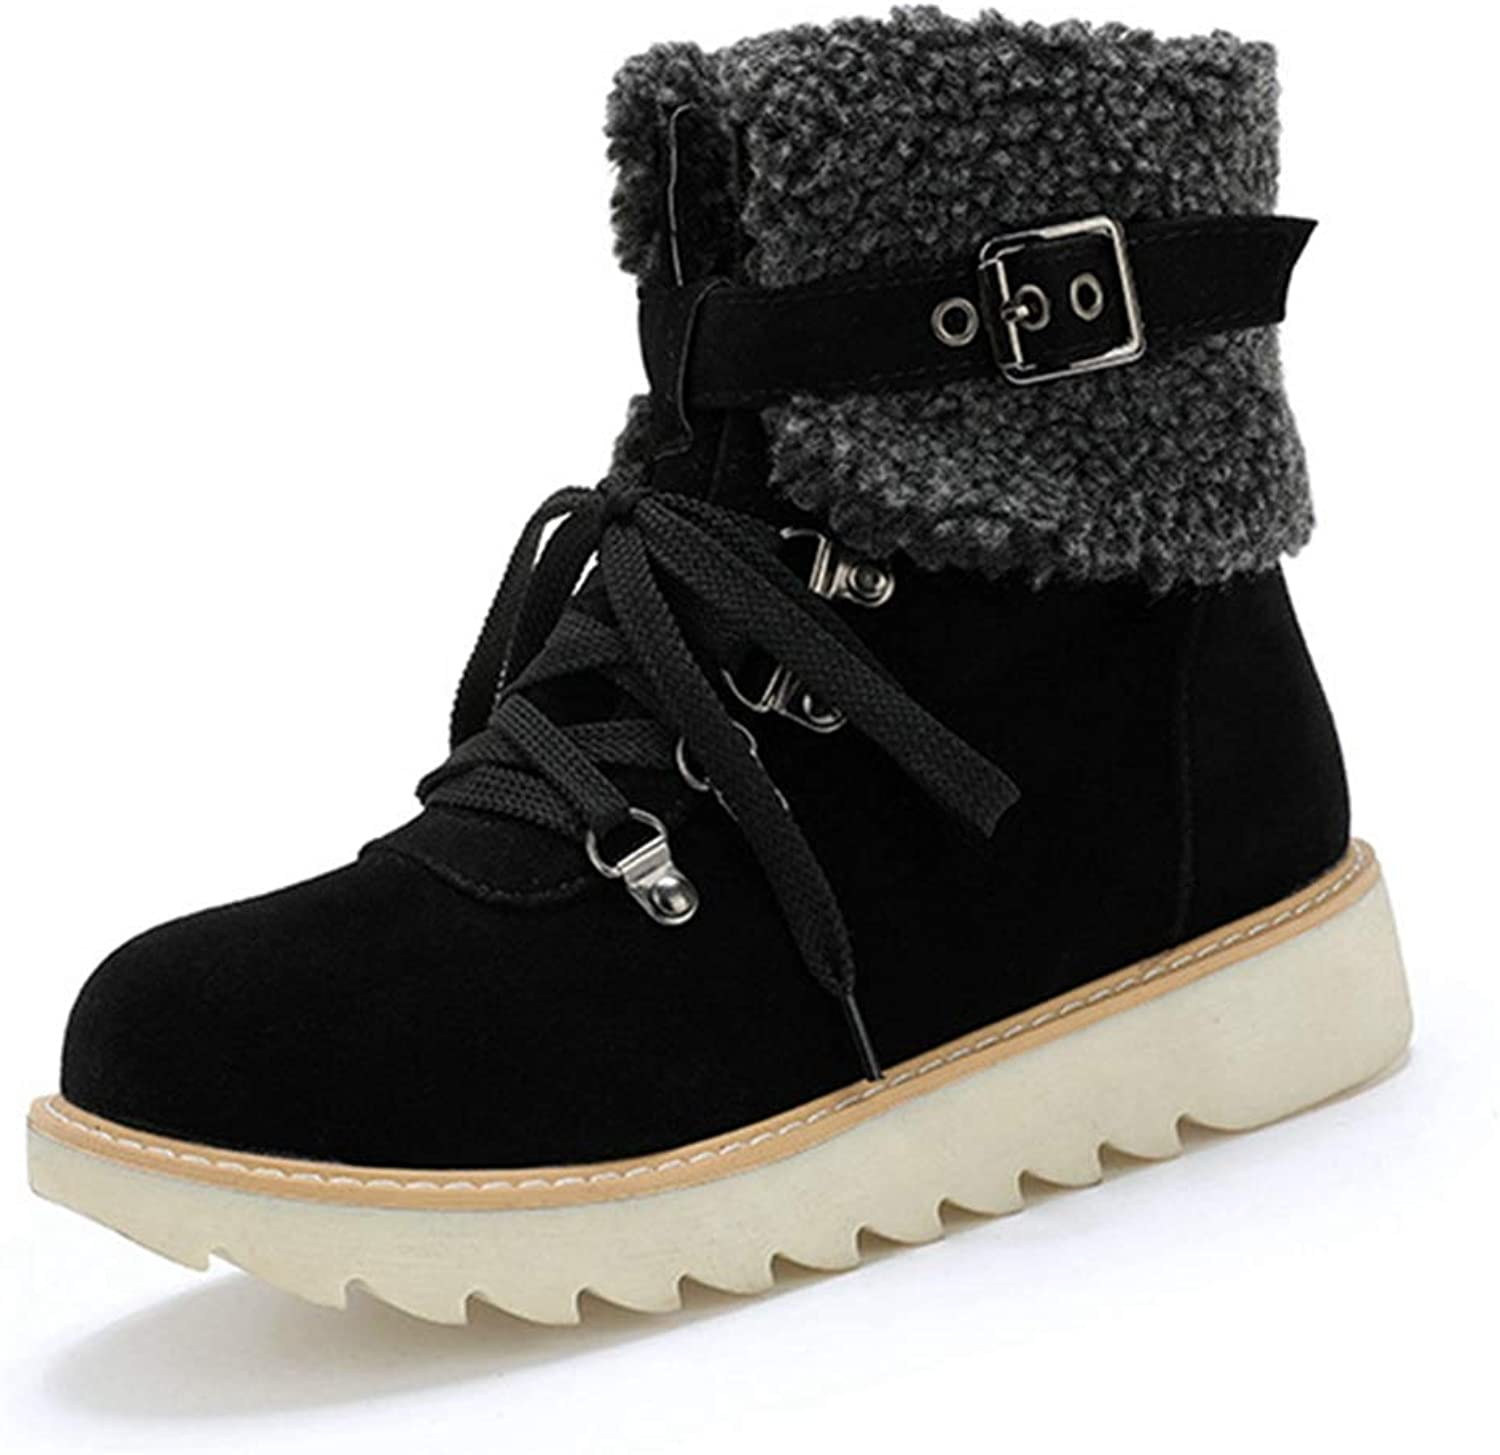 GIY Women's Ankle High Snow Boots Lace-Up Winter Warm Fur Round Toe Short Boots Flat Heel Outdoor Work Combat Bootie